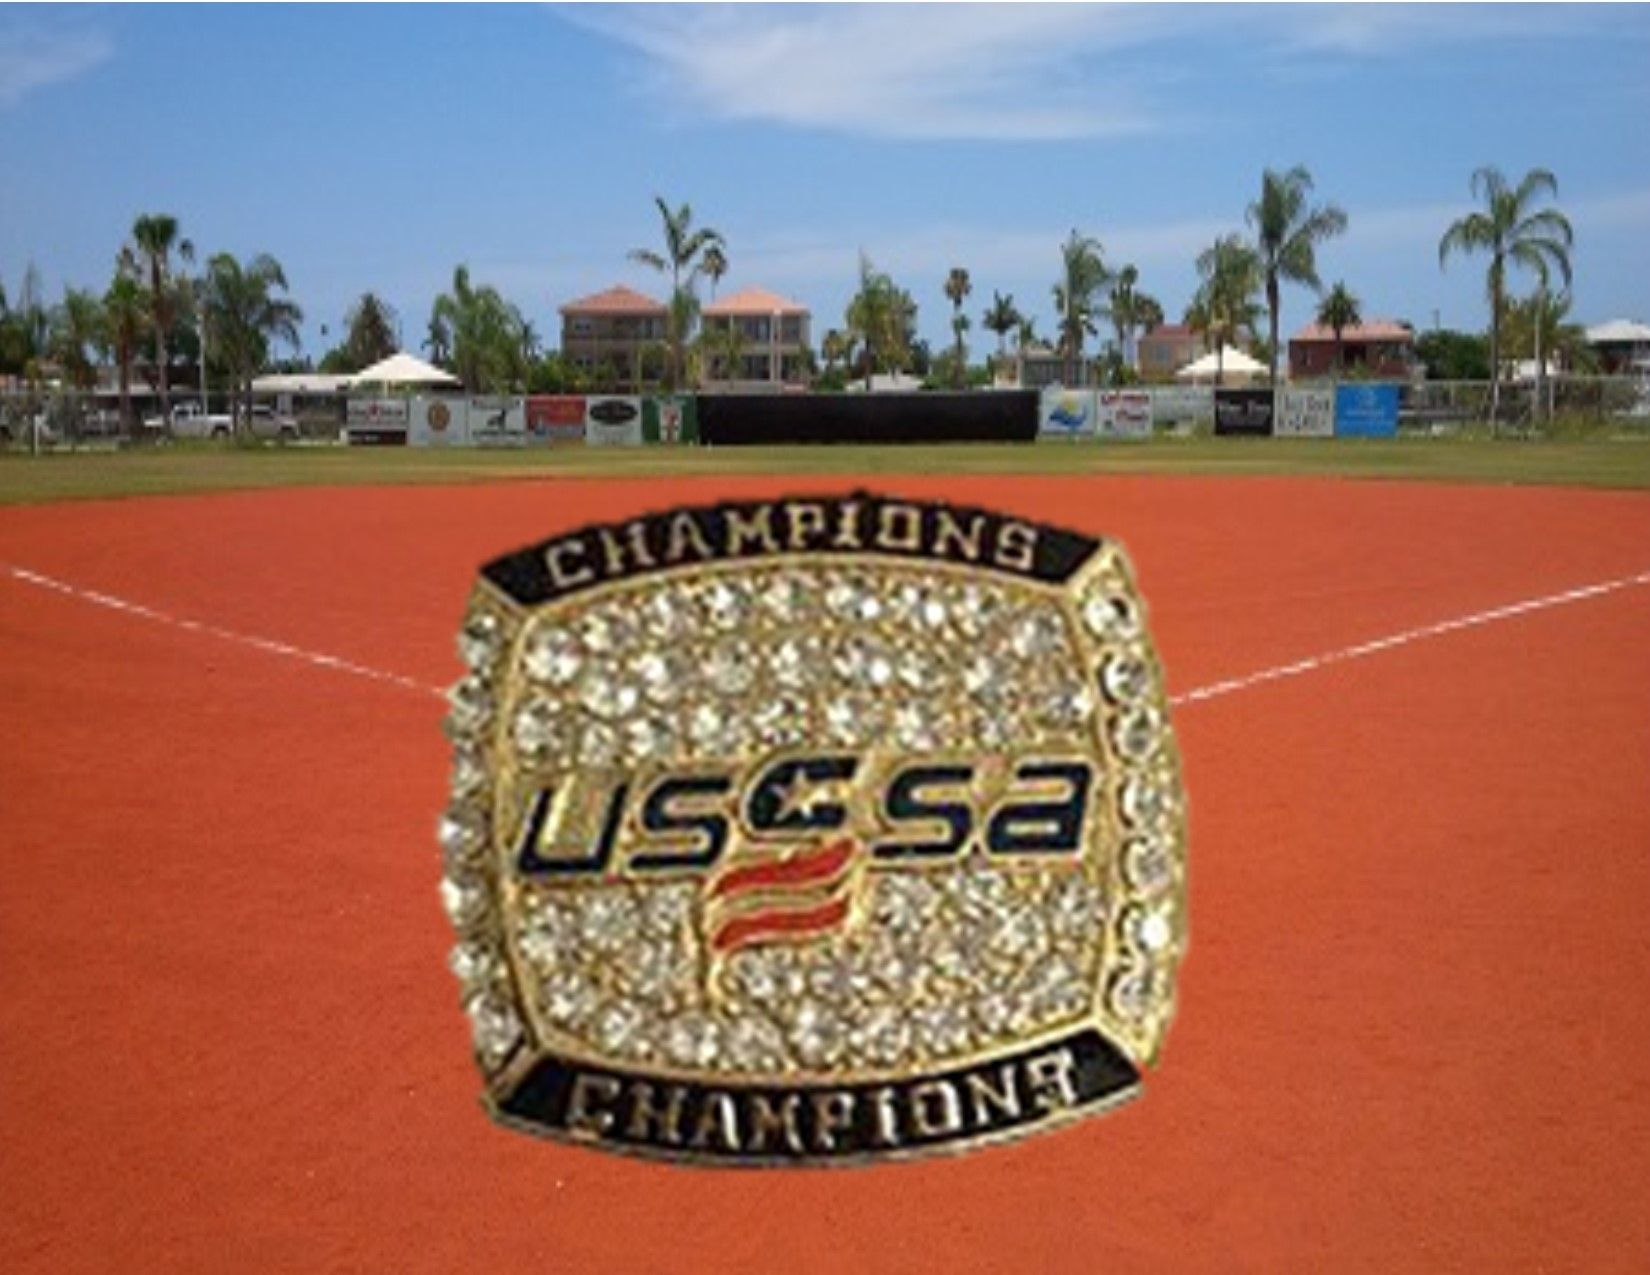 USSSA bling awarded at tournament